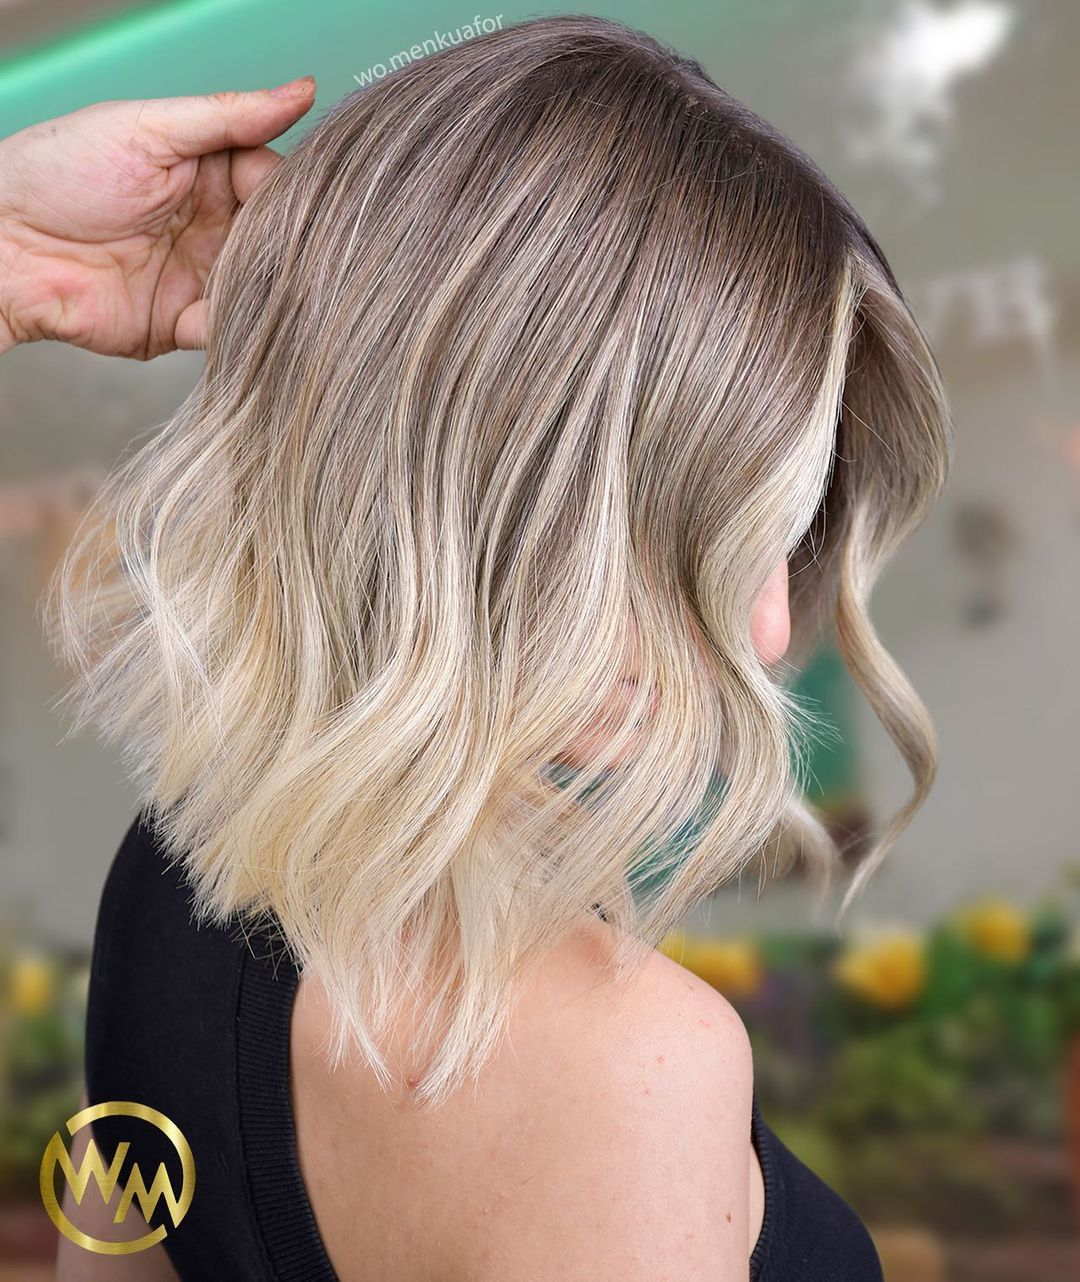 50 Newest Hairstyle For Women And Hair Trends For 2021 images 2